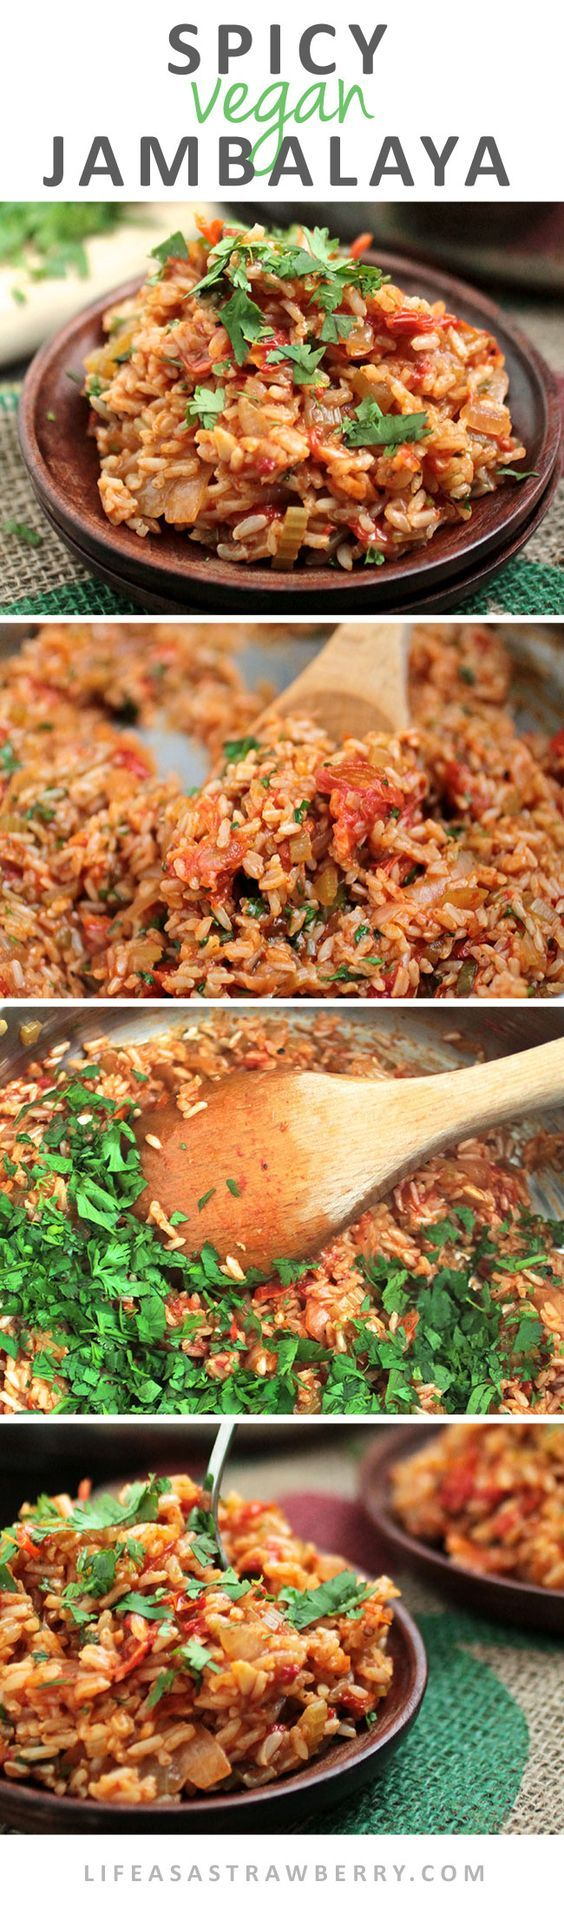 Spicy Vegan Jambalaya This easy vegan recipe for jambalaya is full of fresh produce and gets a spicy kick from fresh jalapeños! Ready in under an hour the perfect healthy vegan recipe for busy weeknights.